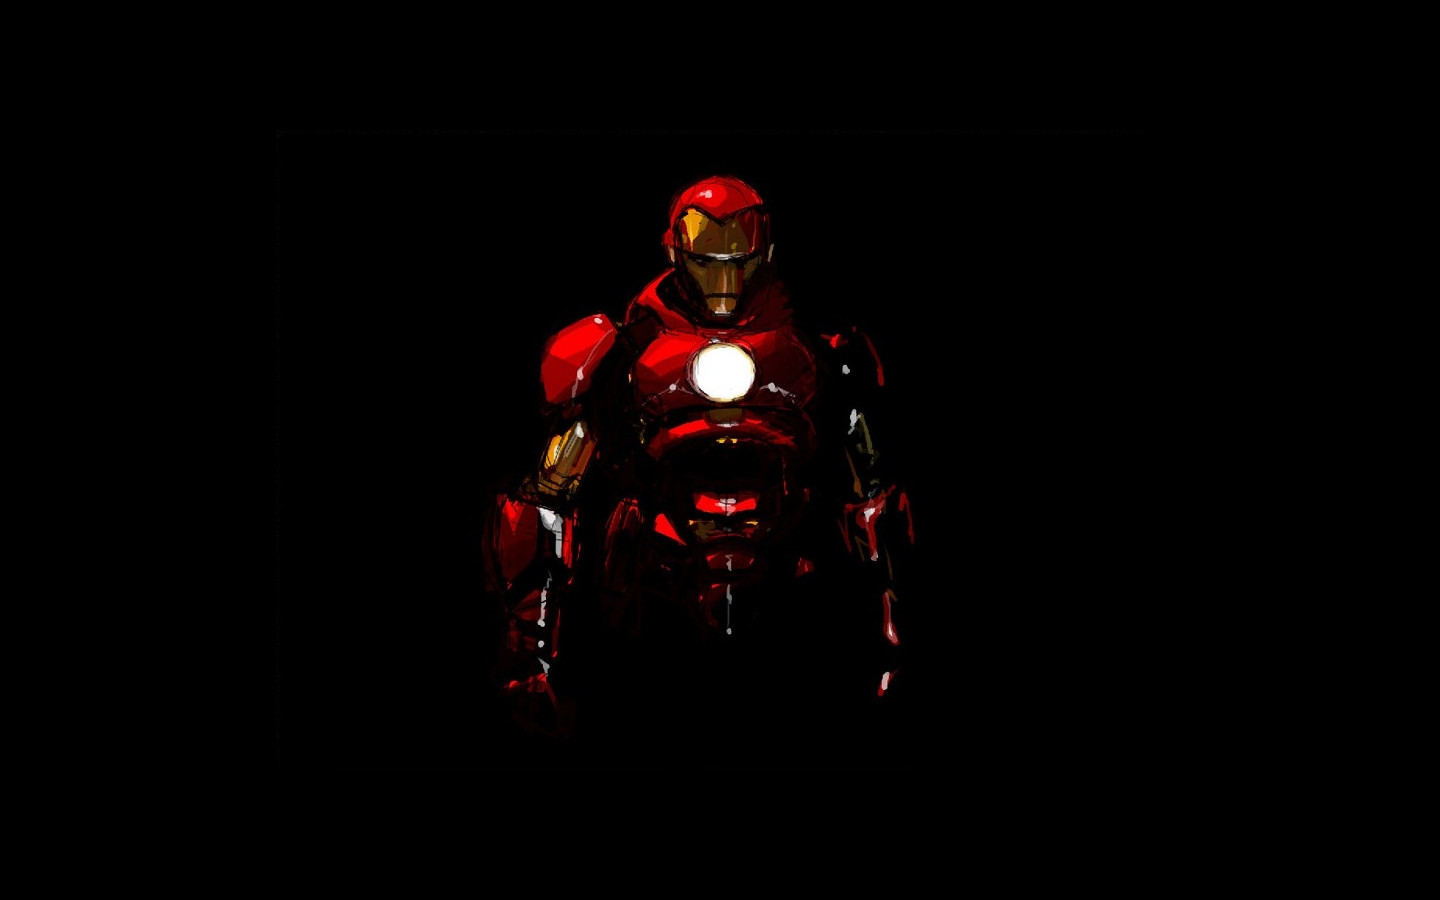 HDMOU TOP 22 IRON MAN WALLPAPERS IN HD 1440x900